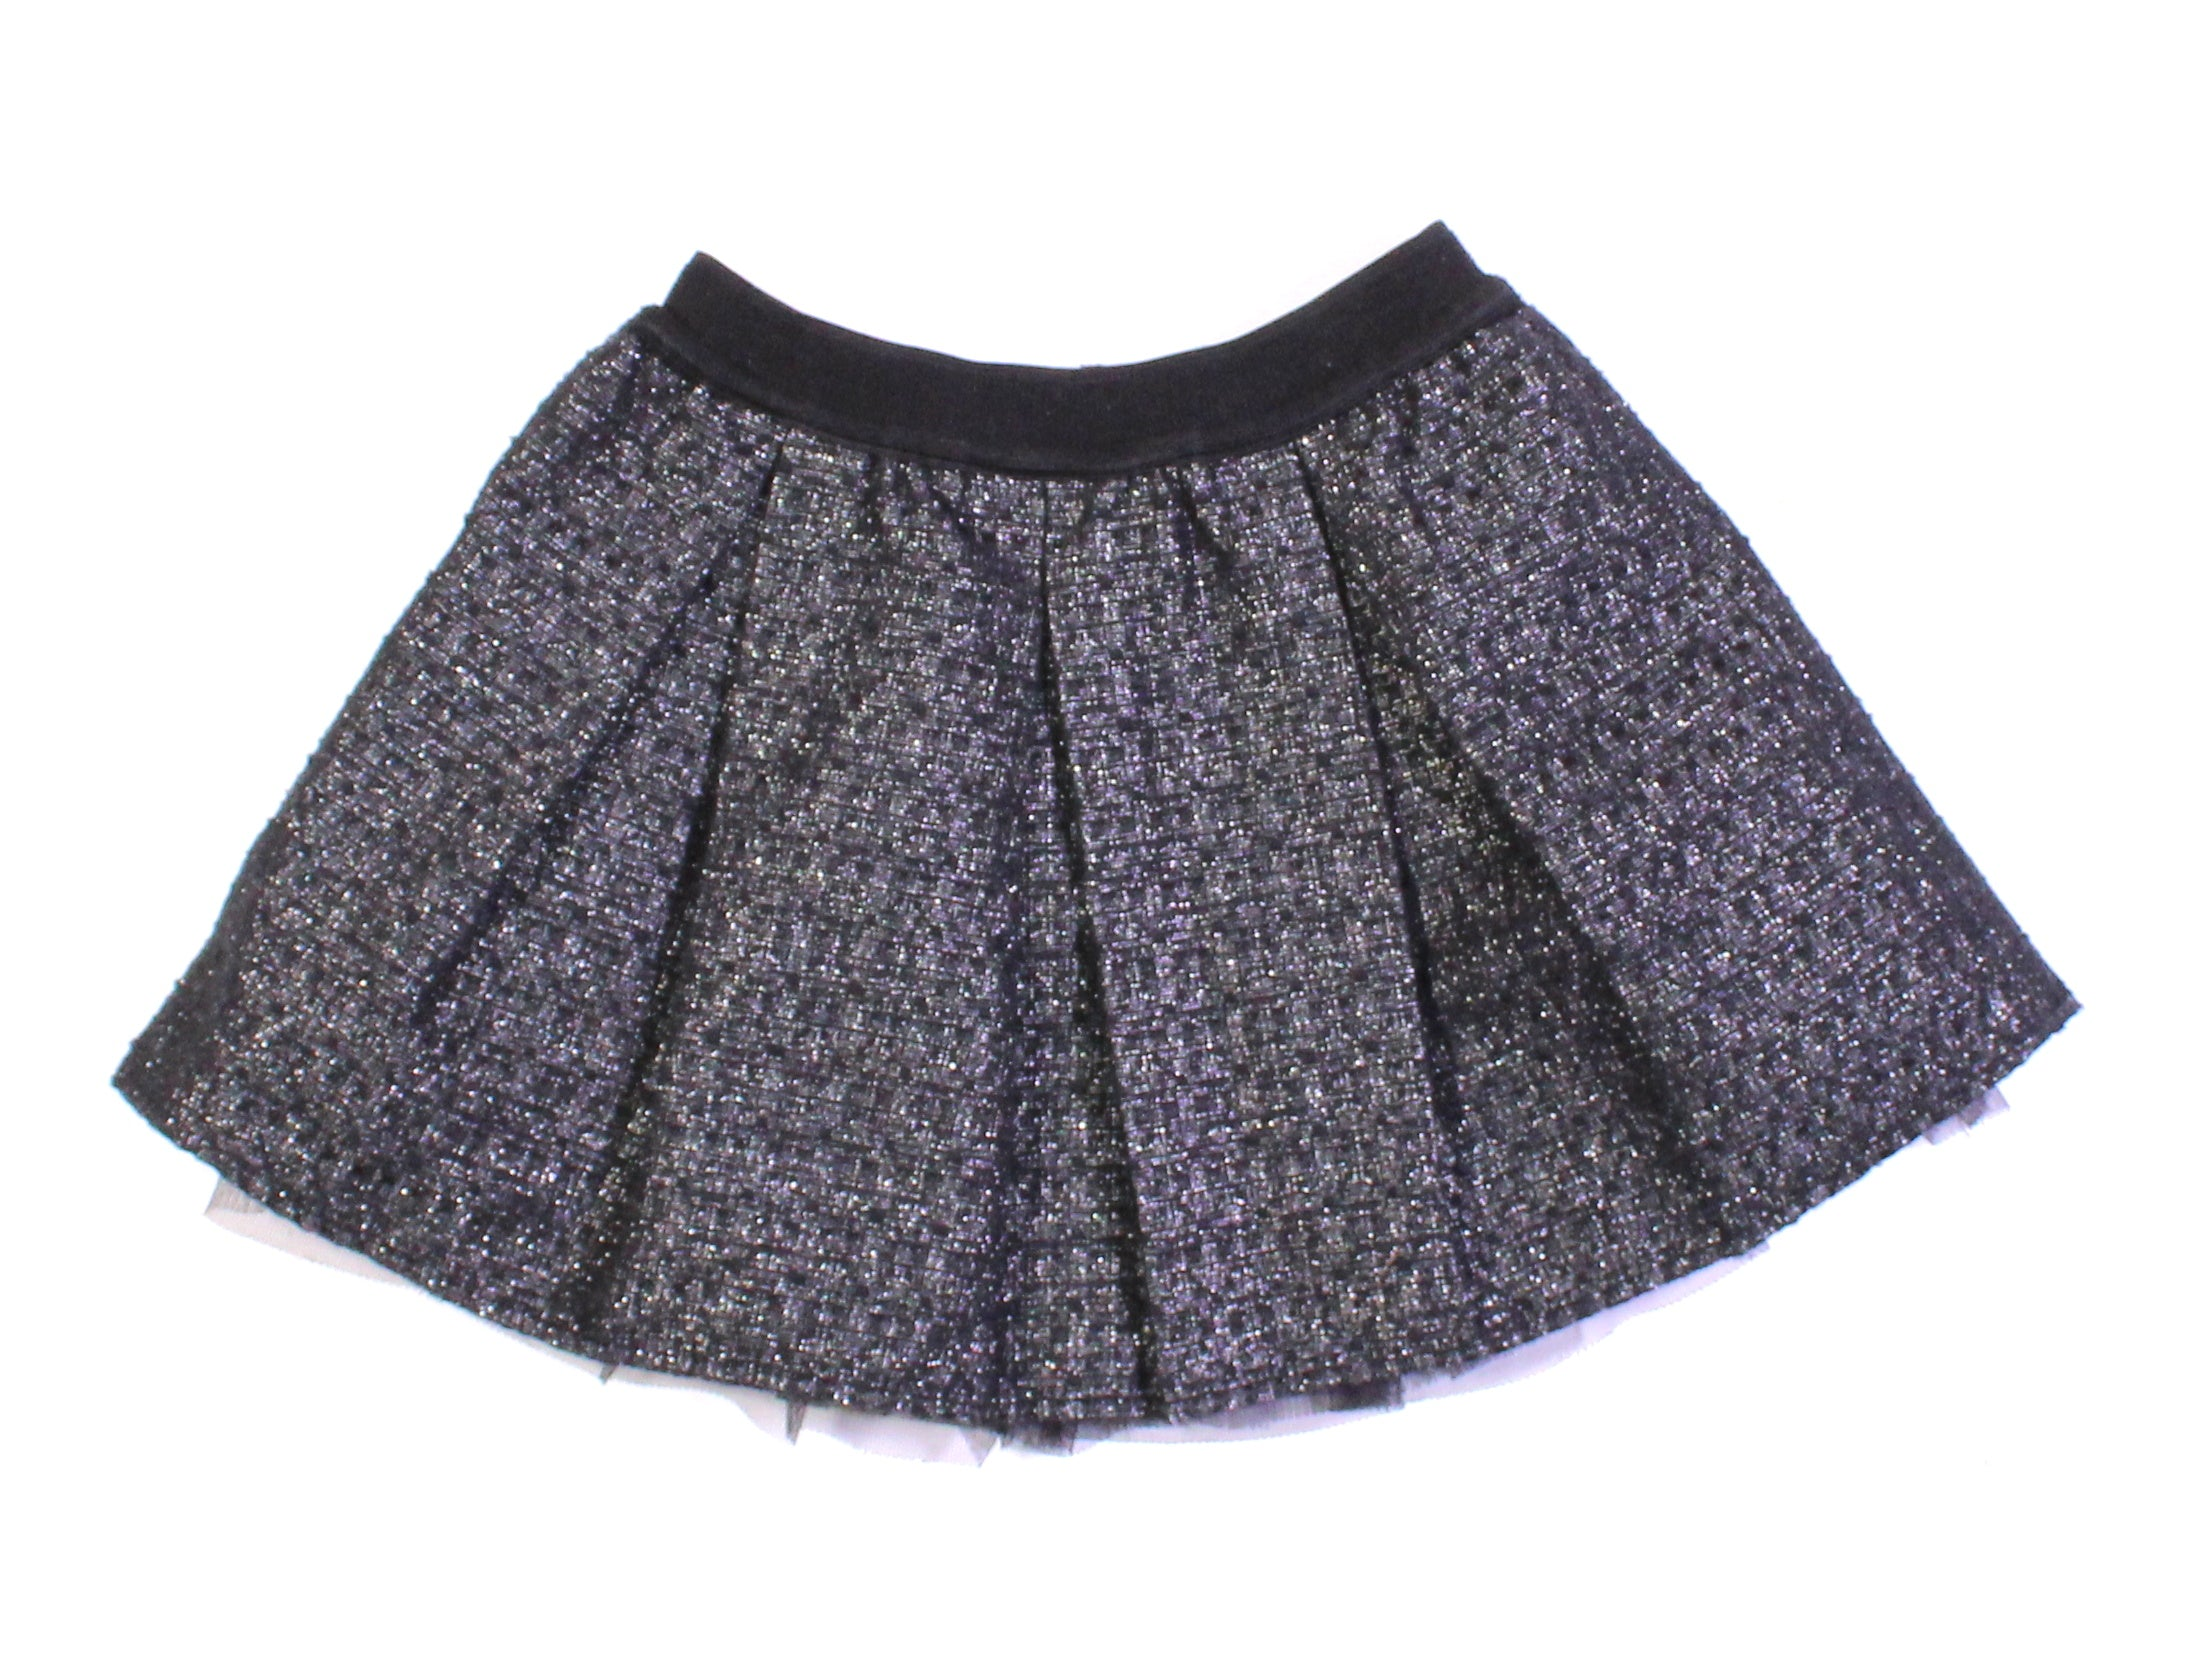 JOE FRESH BLACK GLITTER SKIRT 2Y EUC